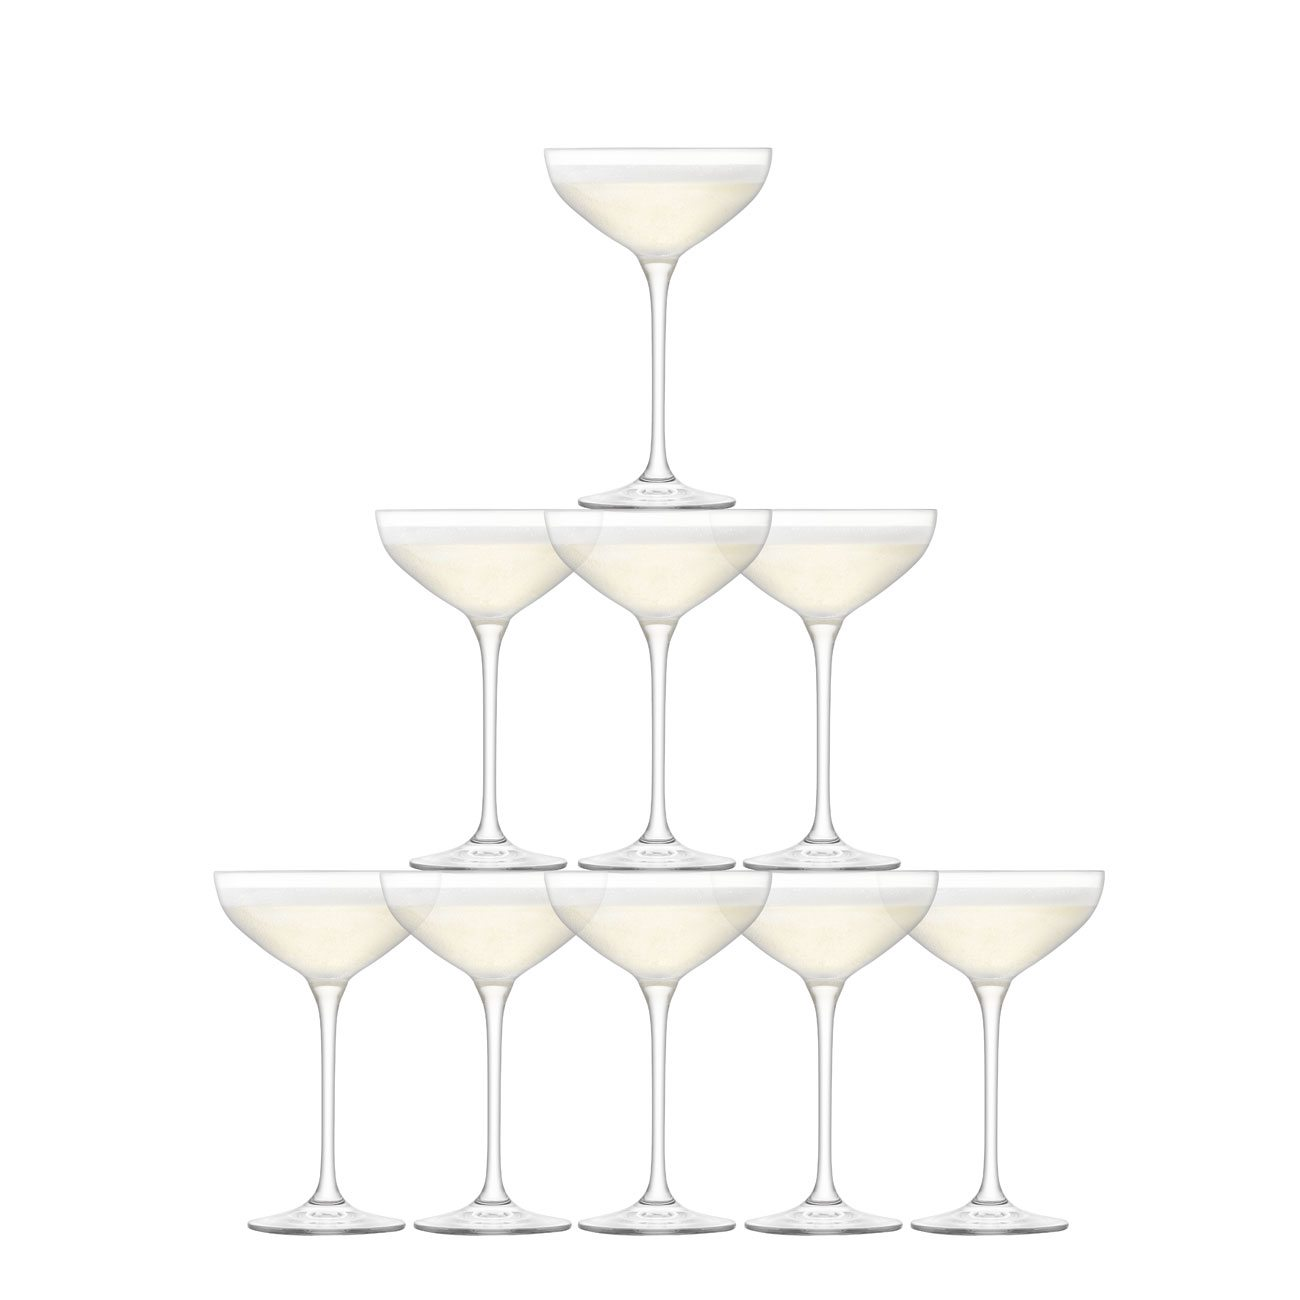 LSA International Tower Champagne Set Clear